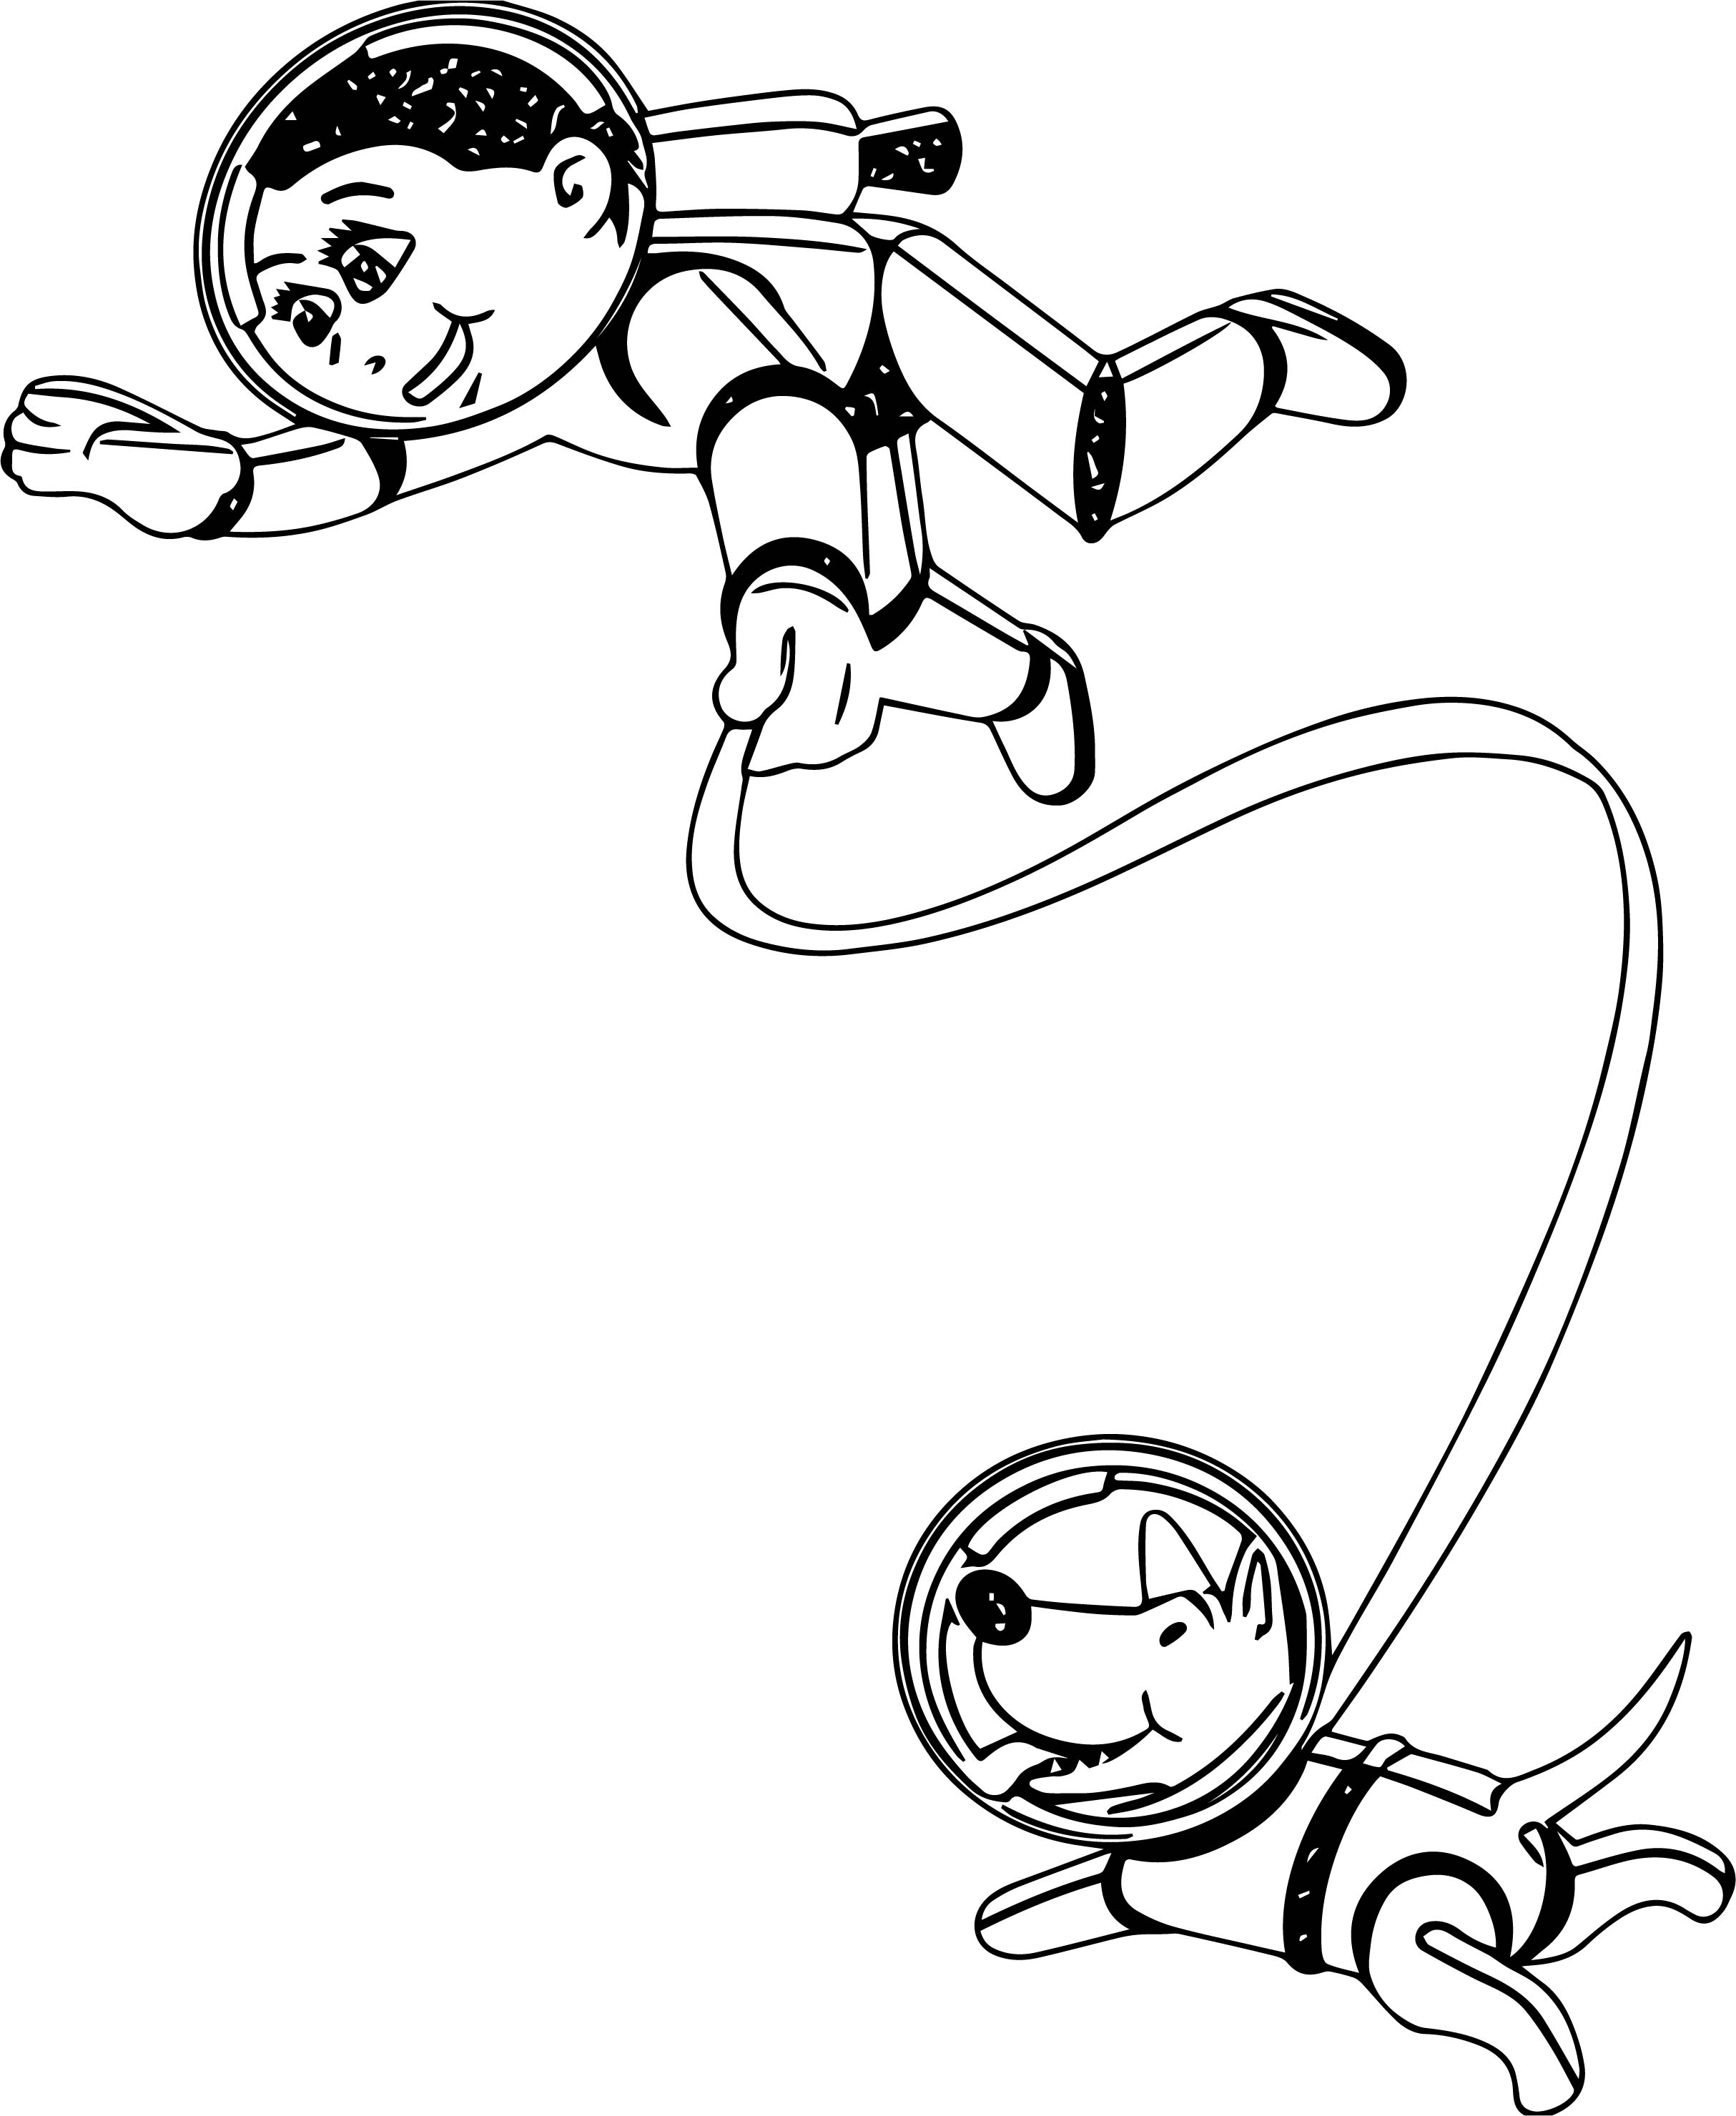 Astronaut And Dog Coloring Page